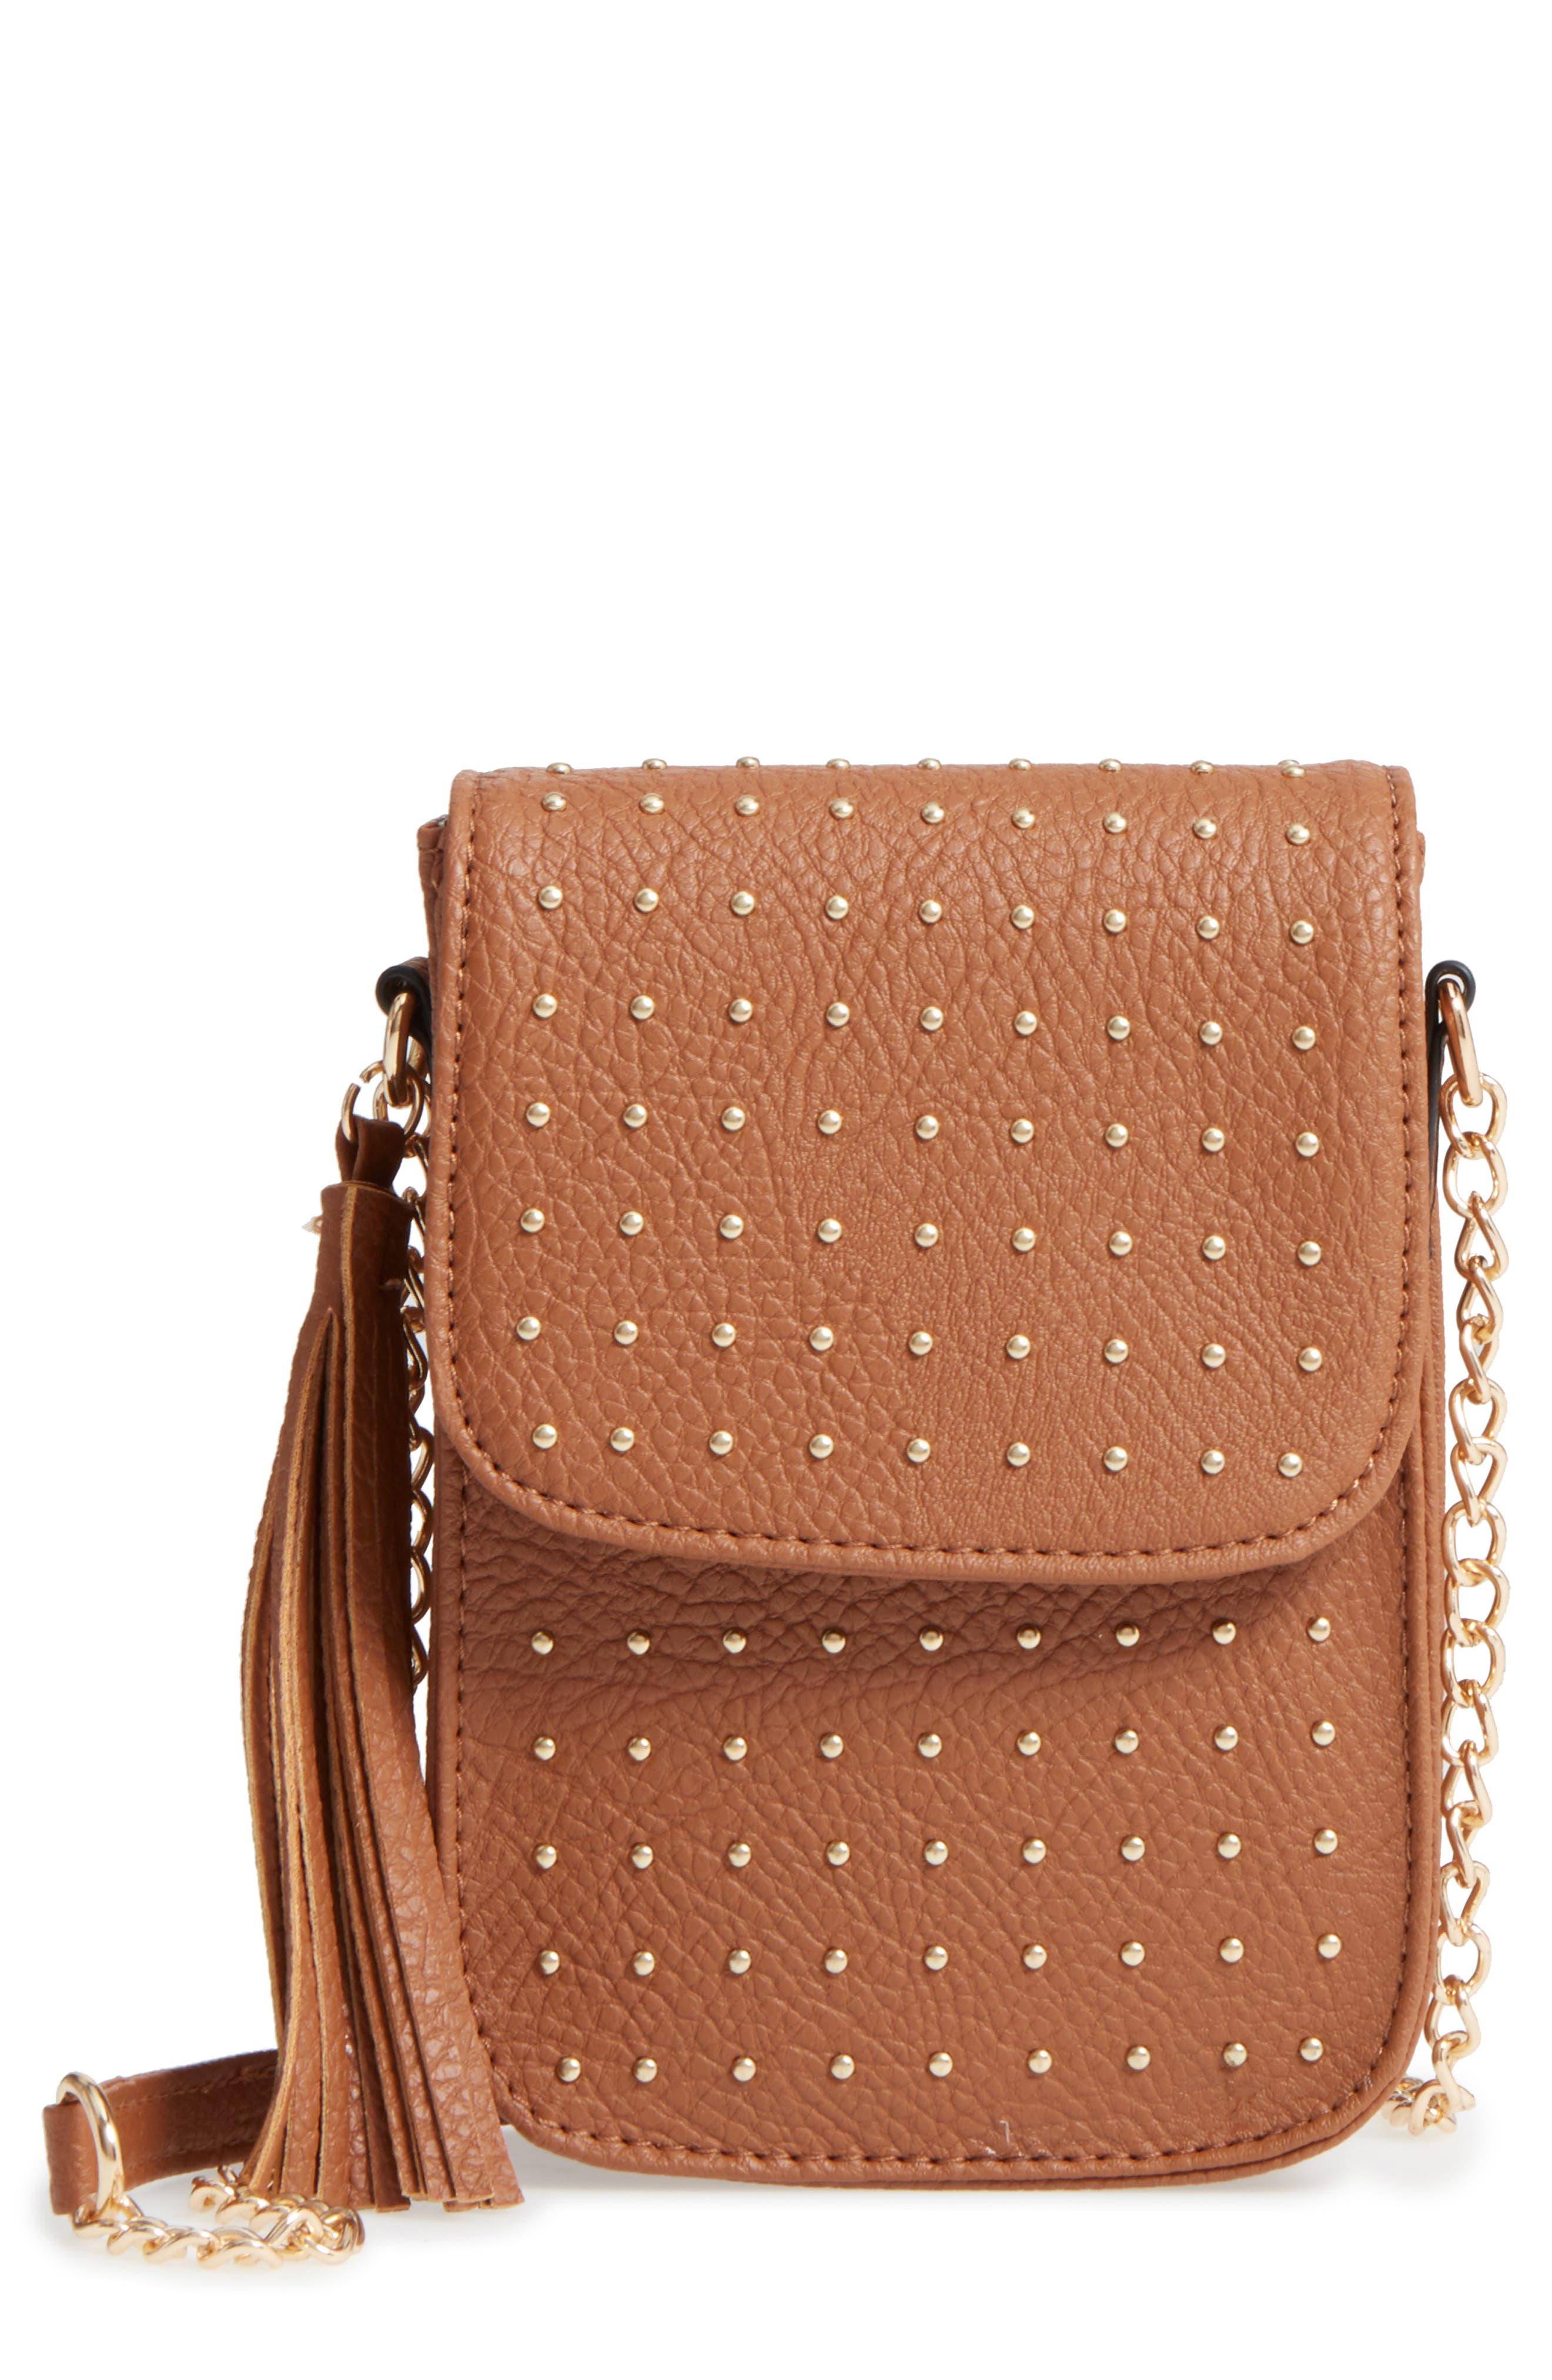 Amici Accessories Studded Faux Leather Phone Crossbody Bag